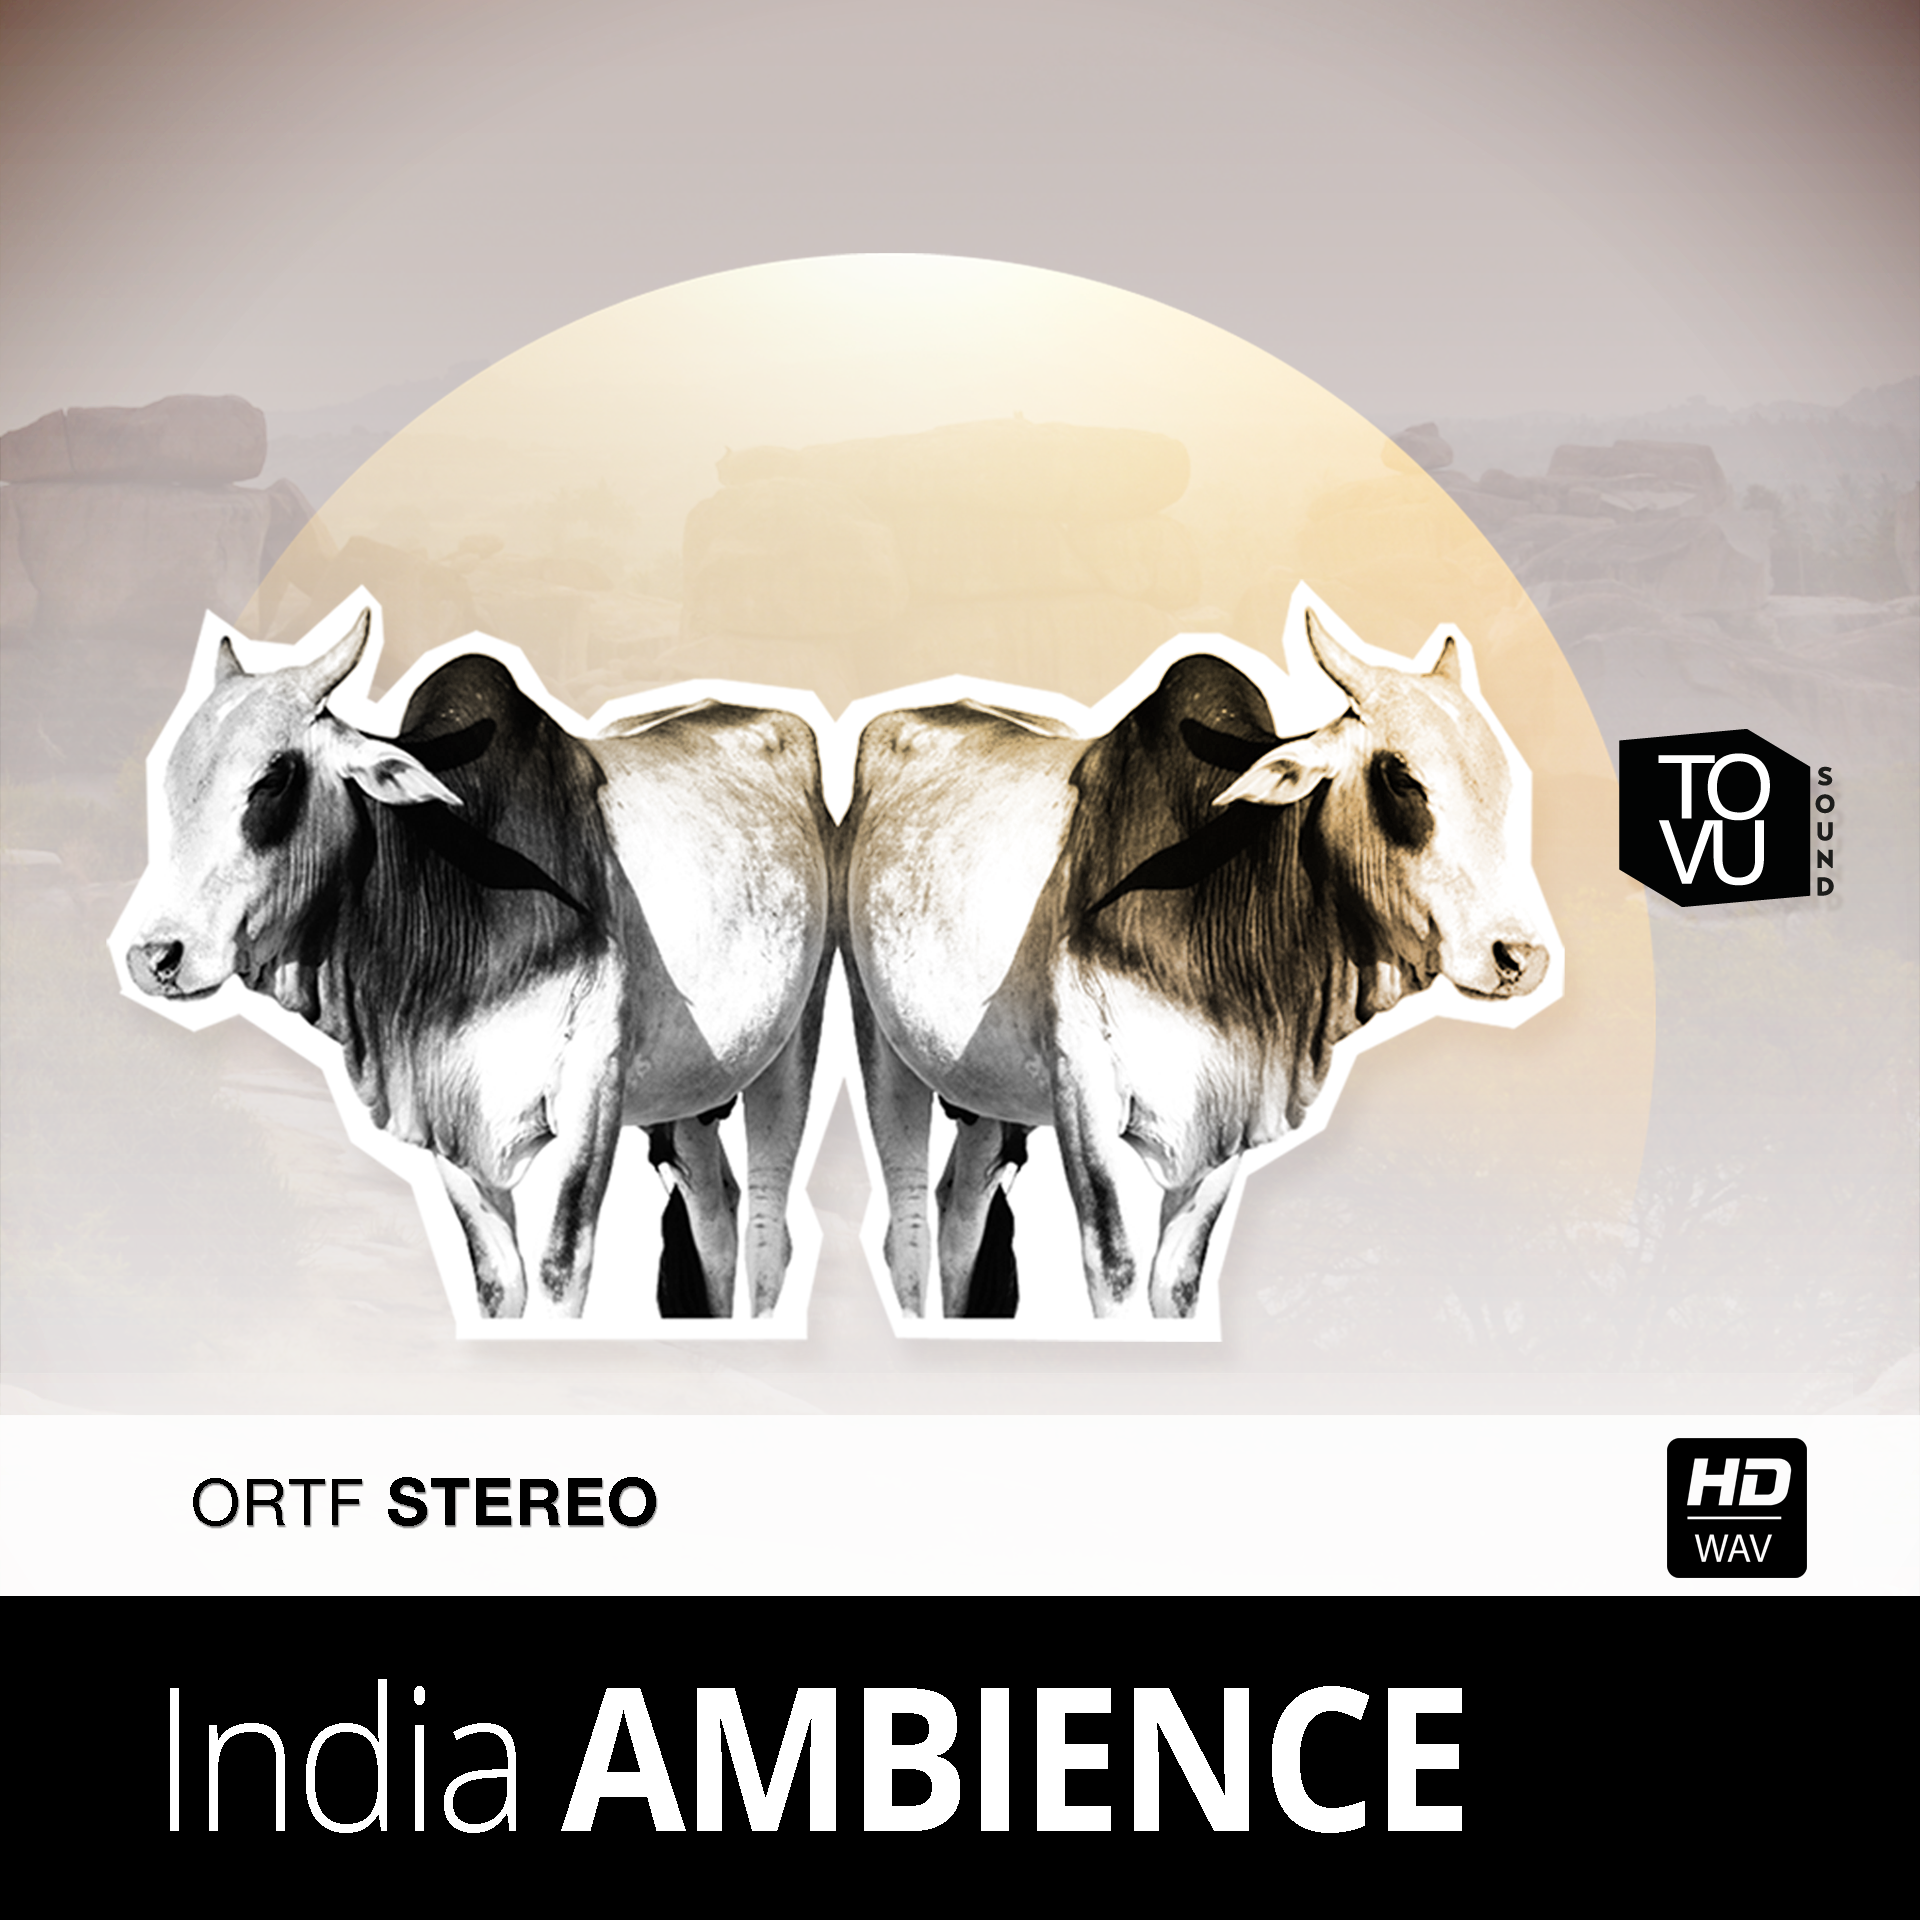 Indian Ambience